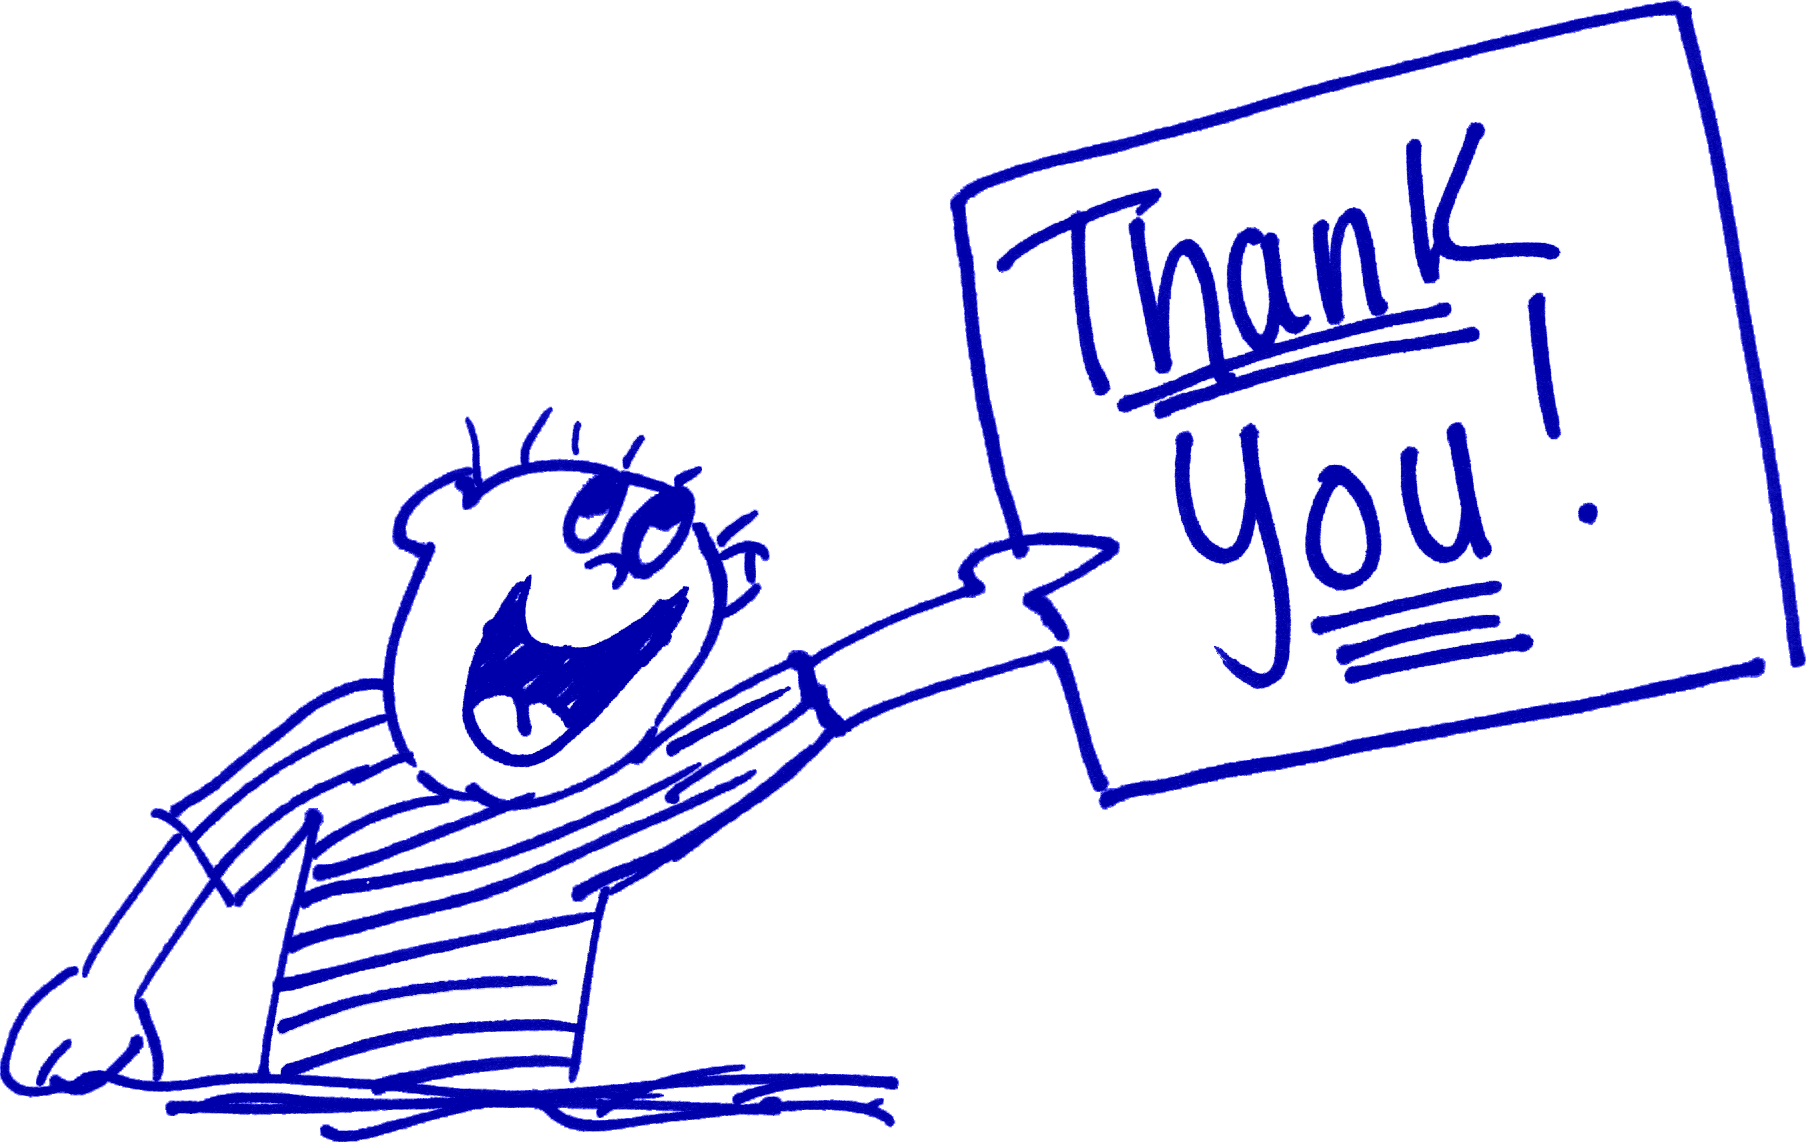 Give clipart thanks mom. Free download clip art